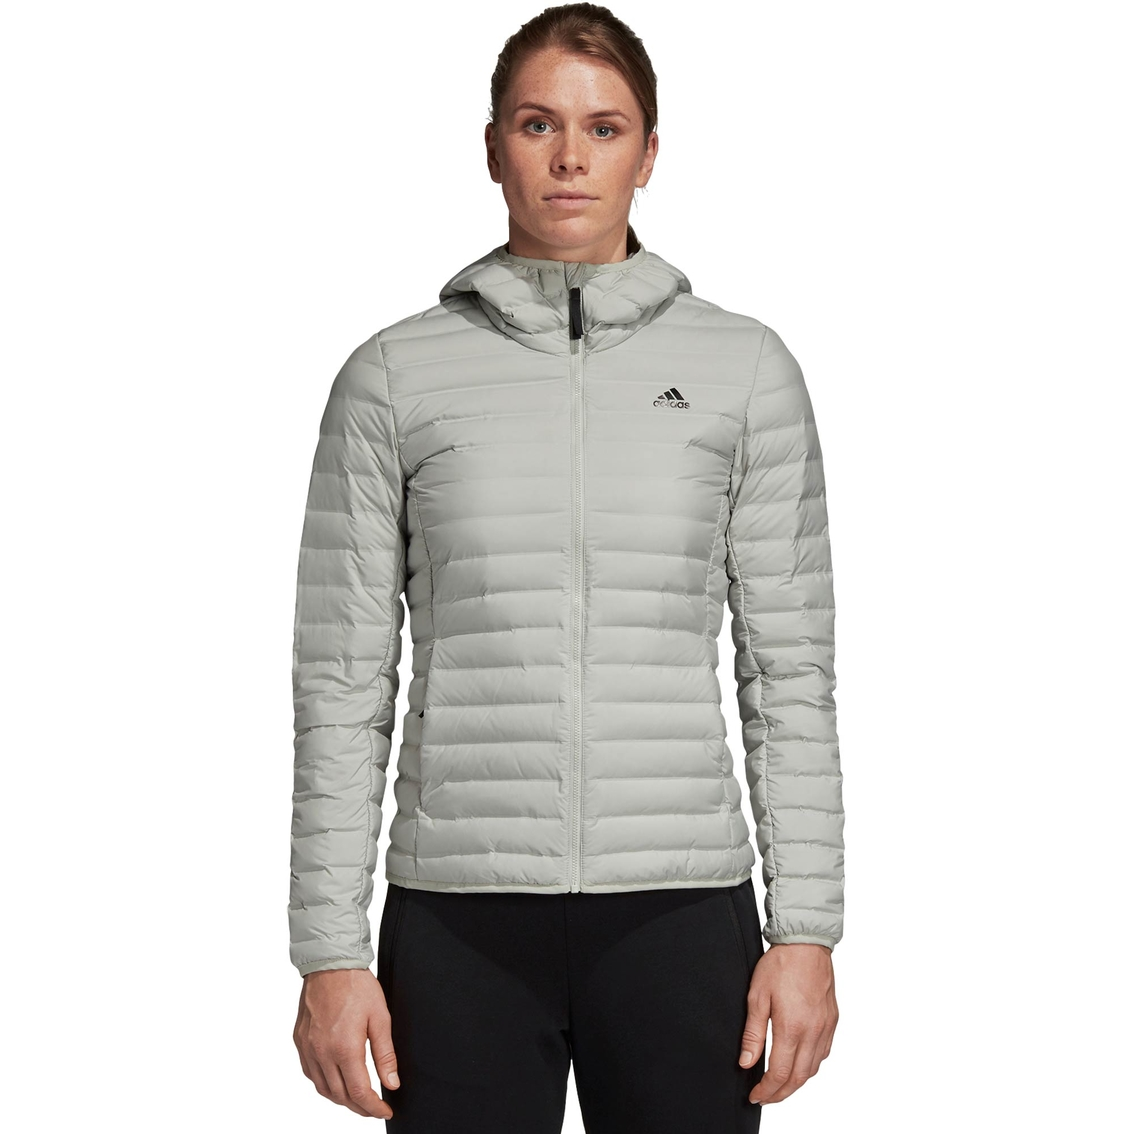 low price sale the latest fast delivery Adidas Varilite Soft Hoodie Jacket | Jackets | Apparel ...